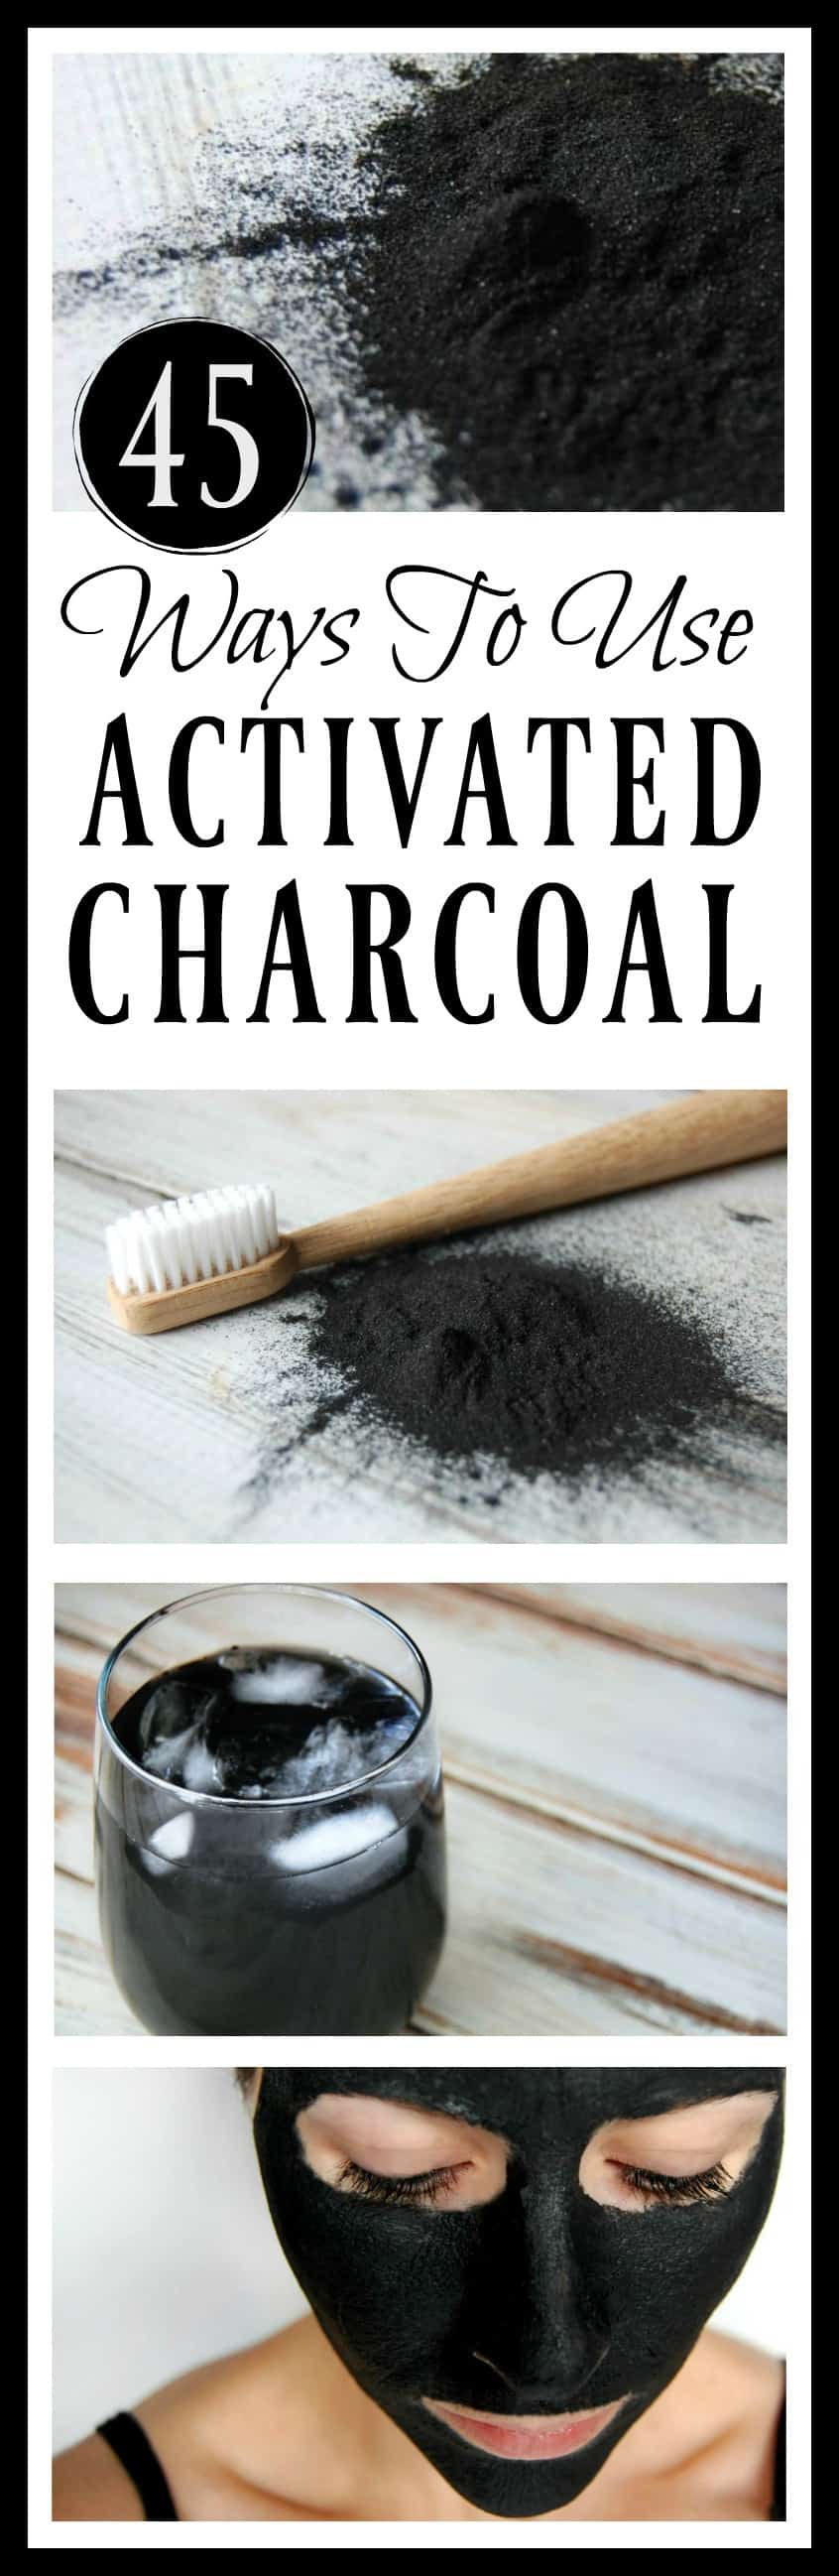 Looking for more ways to use activated charcoal? There are so many ways to use activated charcoal. In fact, here are 45 ways to use it in skincare, remedies, the home, and even food!